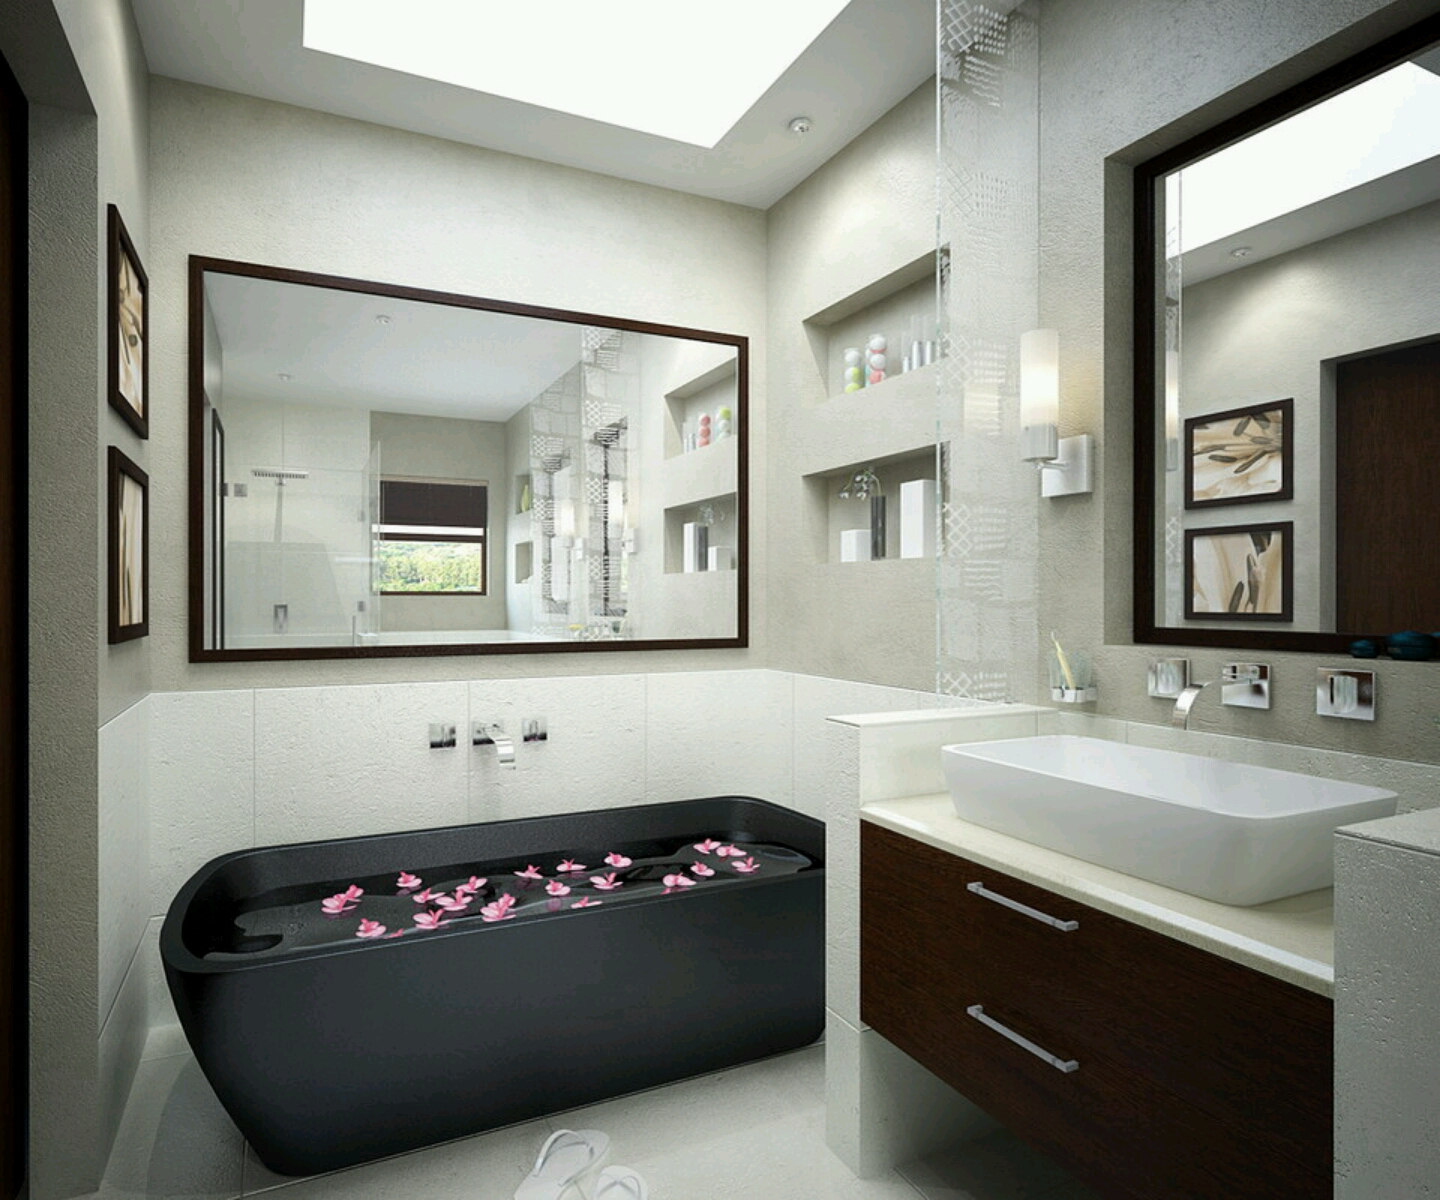 Modern bathrooms cabinets designs furniture gallery Modern contemporary bathrooms